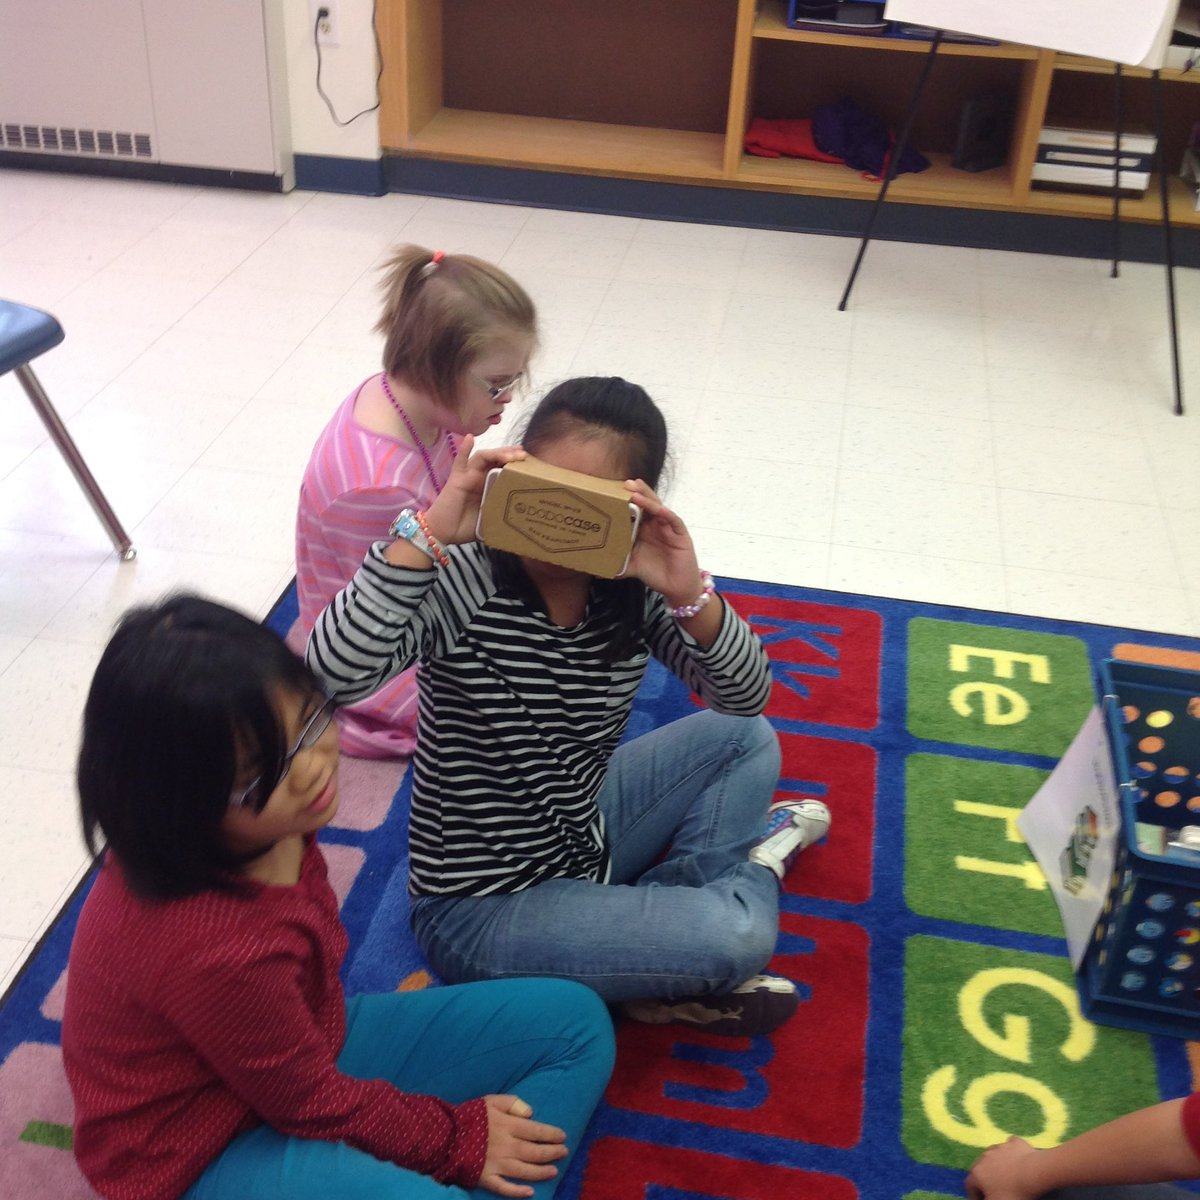 Visiting Alaska using 3D Viewer to learn about the Iditarod <a target='_blank' href='http://twitter.com/APSLibrarians'>@APSLibrarians</a> <a target='_blank' href='http://search.twitter.com/search?q=stratfordrocks'><a target='_blank' href='https://twitter.com/hashtag/stratfordrocks?src=hash'>#stratfordrocks</a></a> <a target='_blank' href='http://twitter.com/GoogleForEdu'>@GoogleForEdu</a> <a target='_blank' href='https://t.co/vaADK3ln0H'>https://t.co/vaADK3ln0H</a>